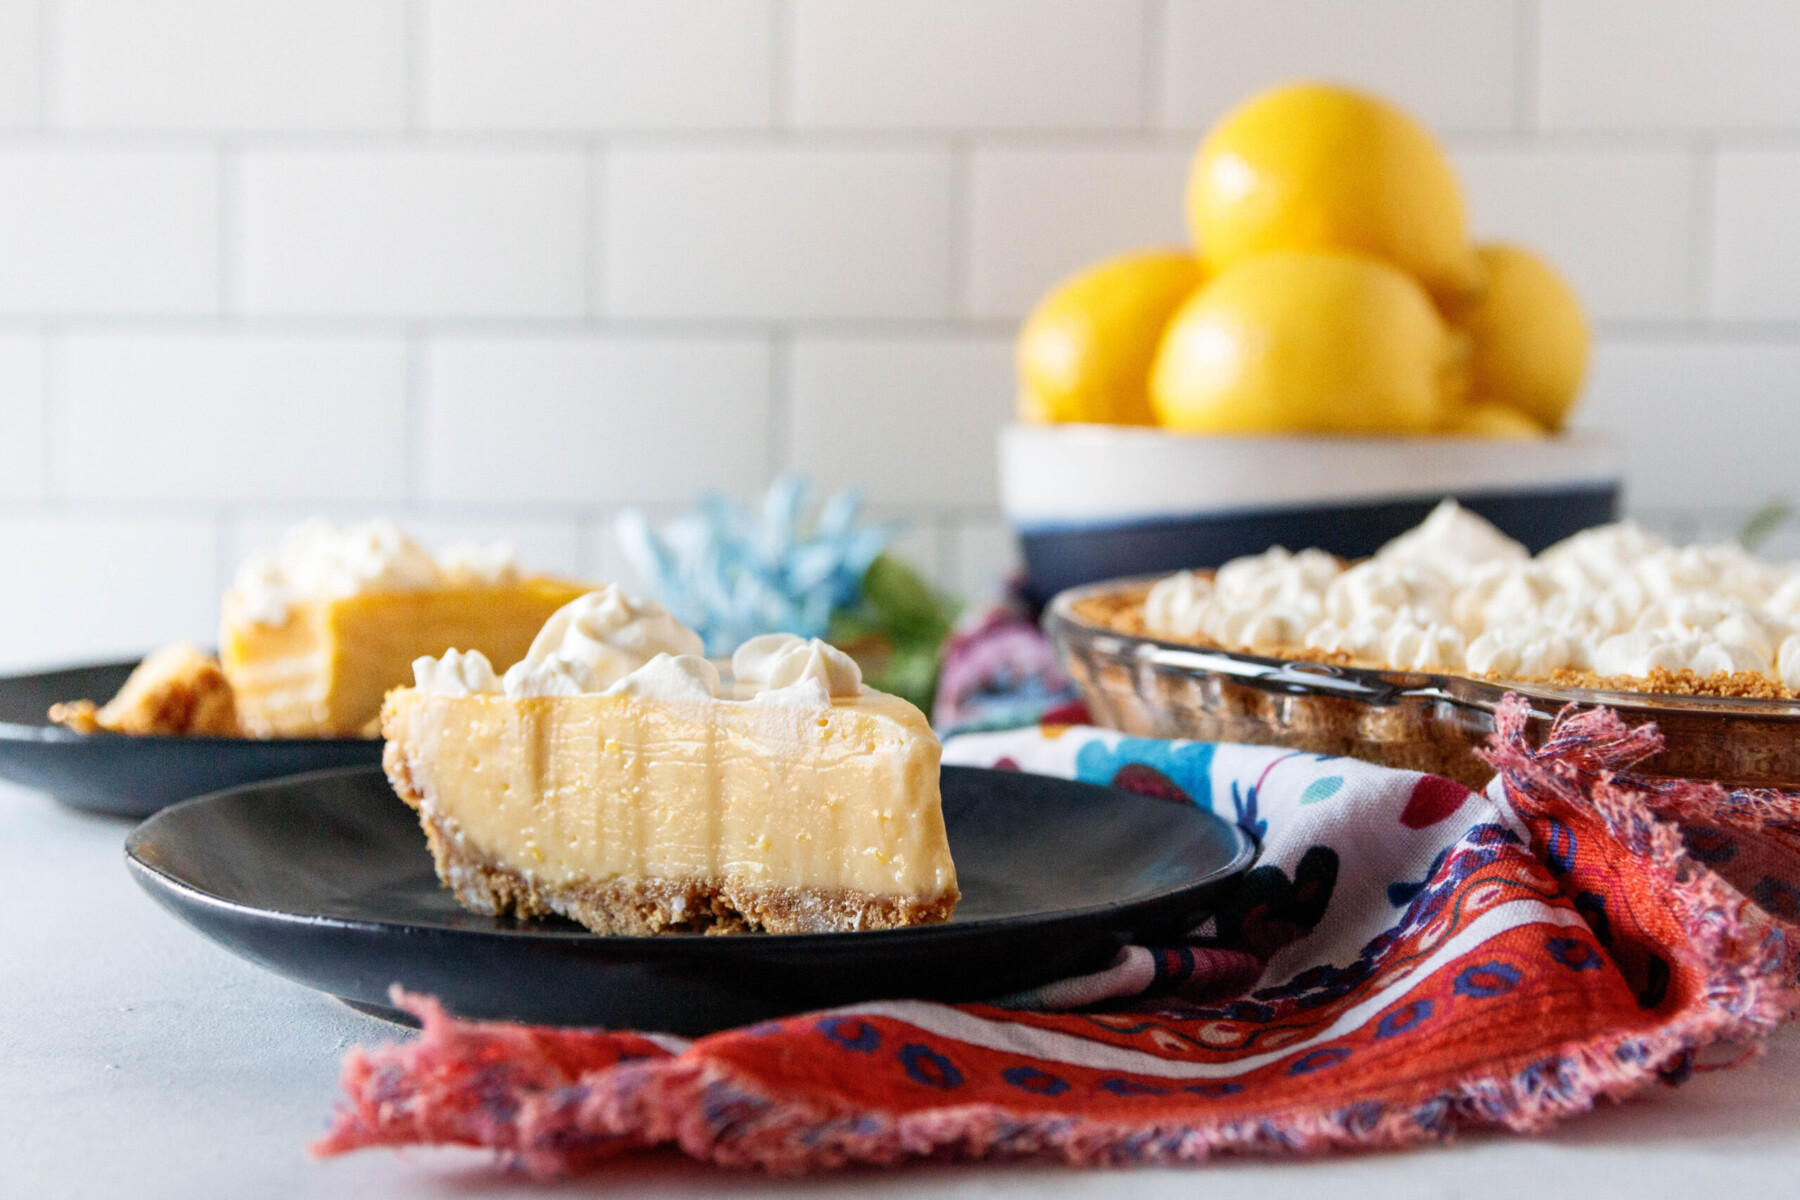 horizontal image showing a slice of lemon pie on a black plate with a bowl of lemons in the background